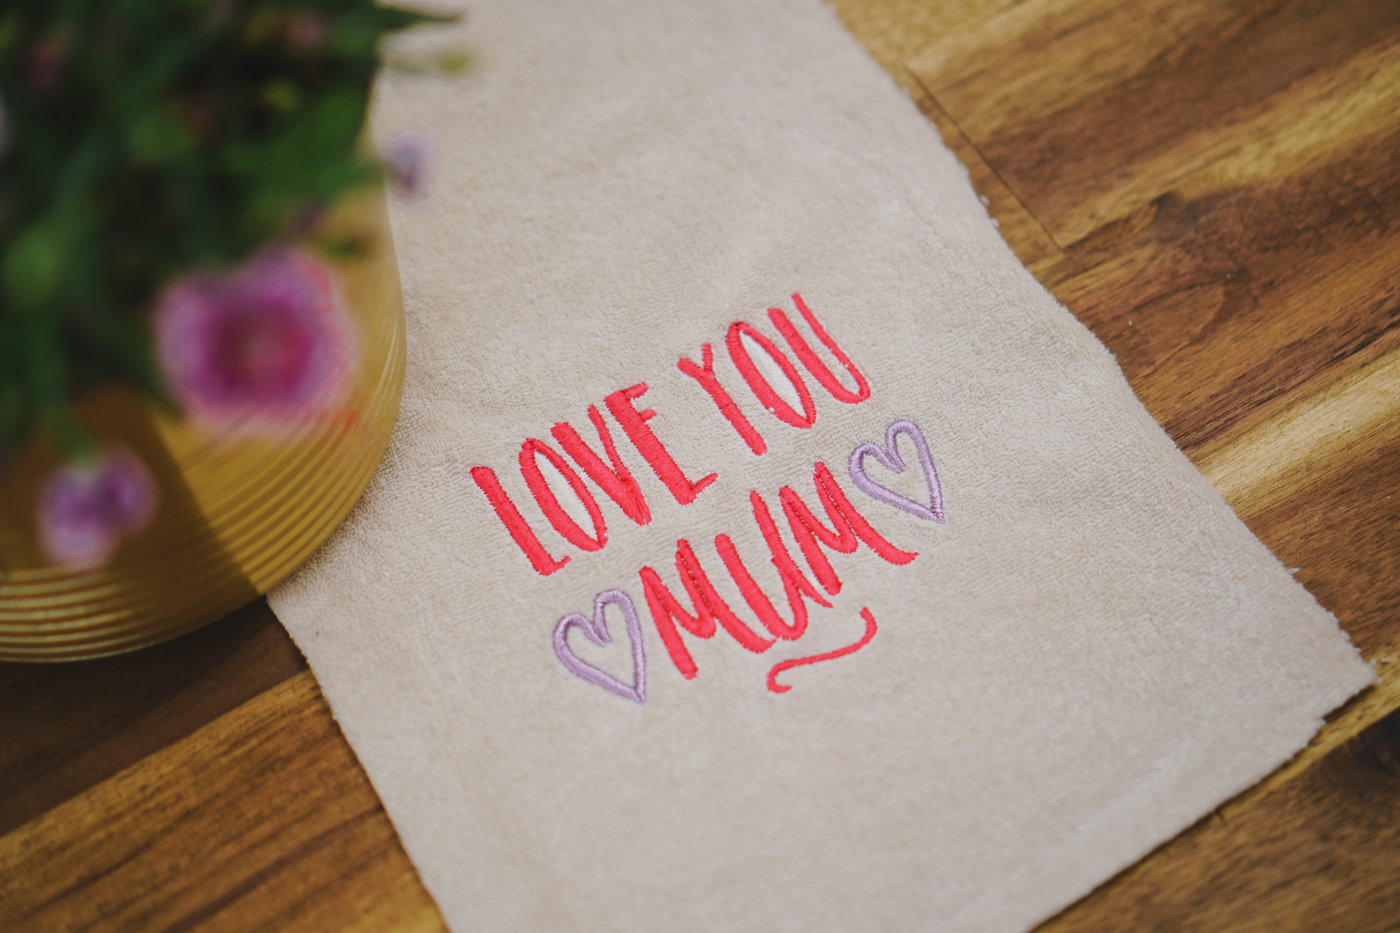 Stickdatei Muttertag machine embroidery designs mother's day Mothers Day »Love You Mum« stickdatei muttertag love you mum 02 1400x933